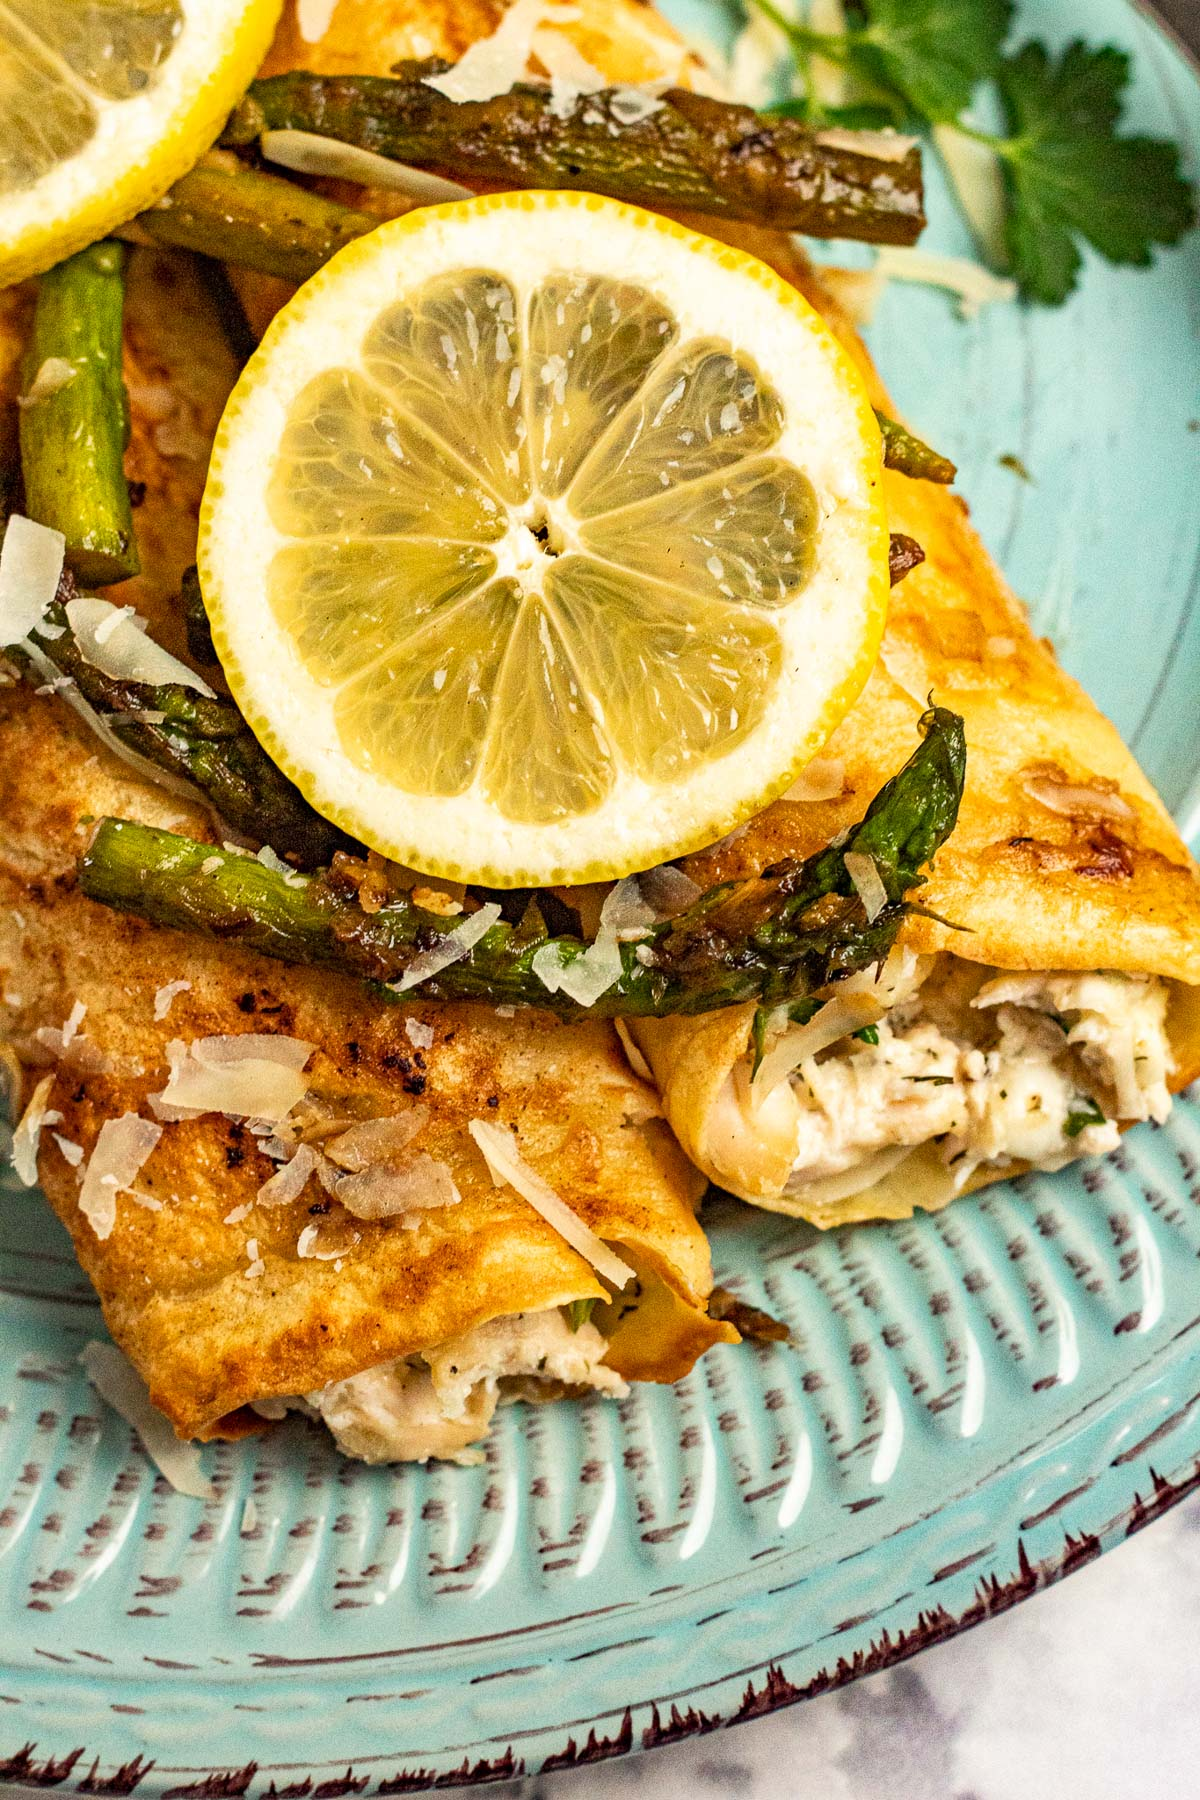 Savory chicken crepes topped with asparagus and lemon slices.